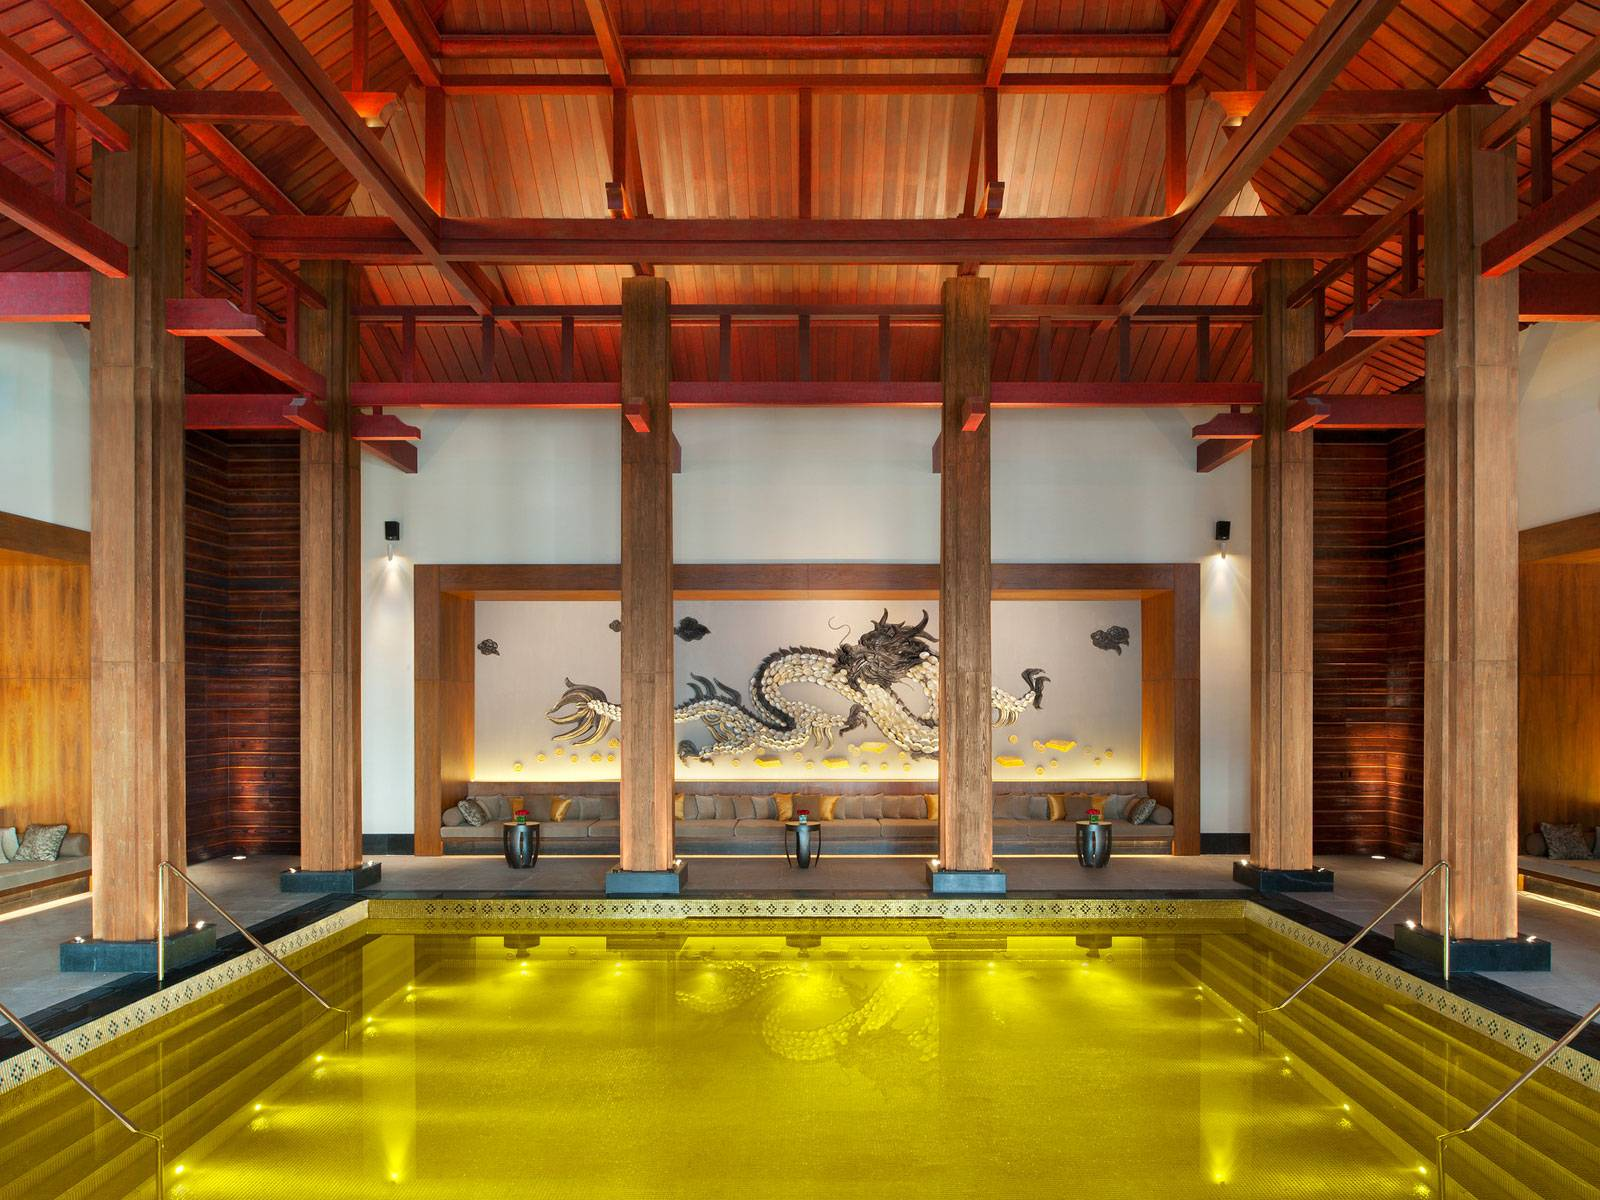 7. Gold Energy Pool at St. Regis in Lhasa, Tibet 2